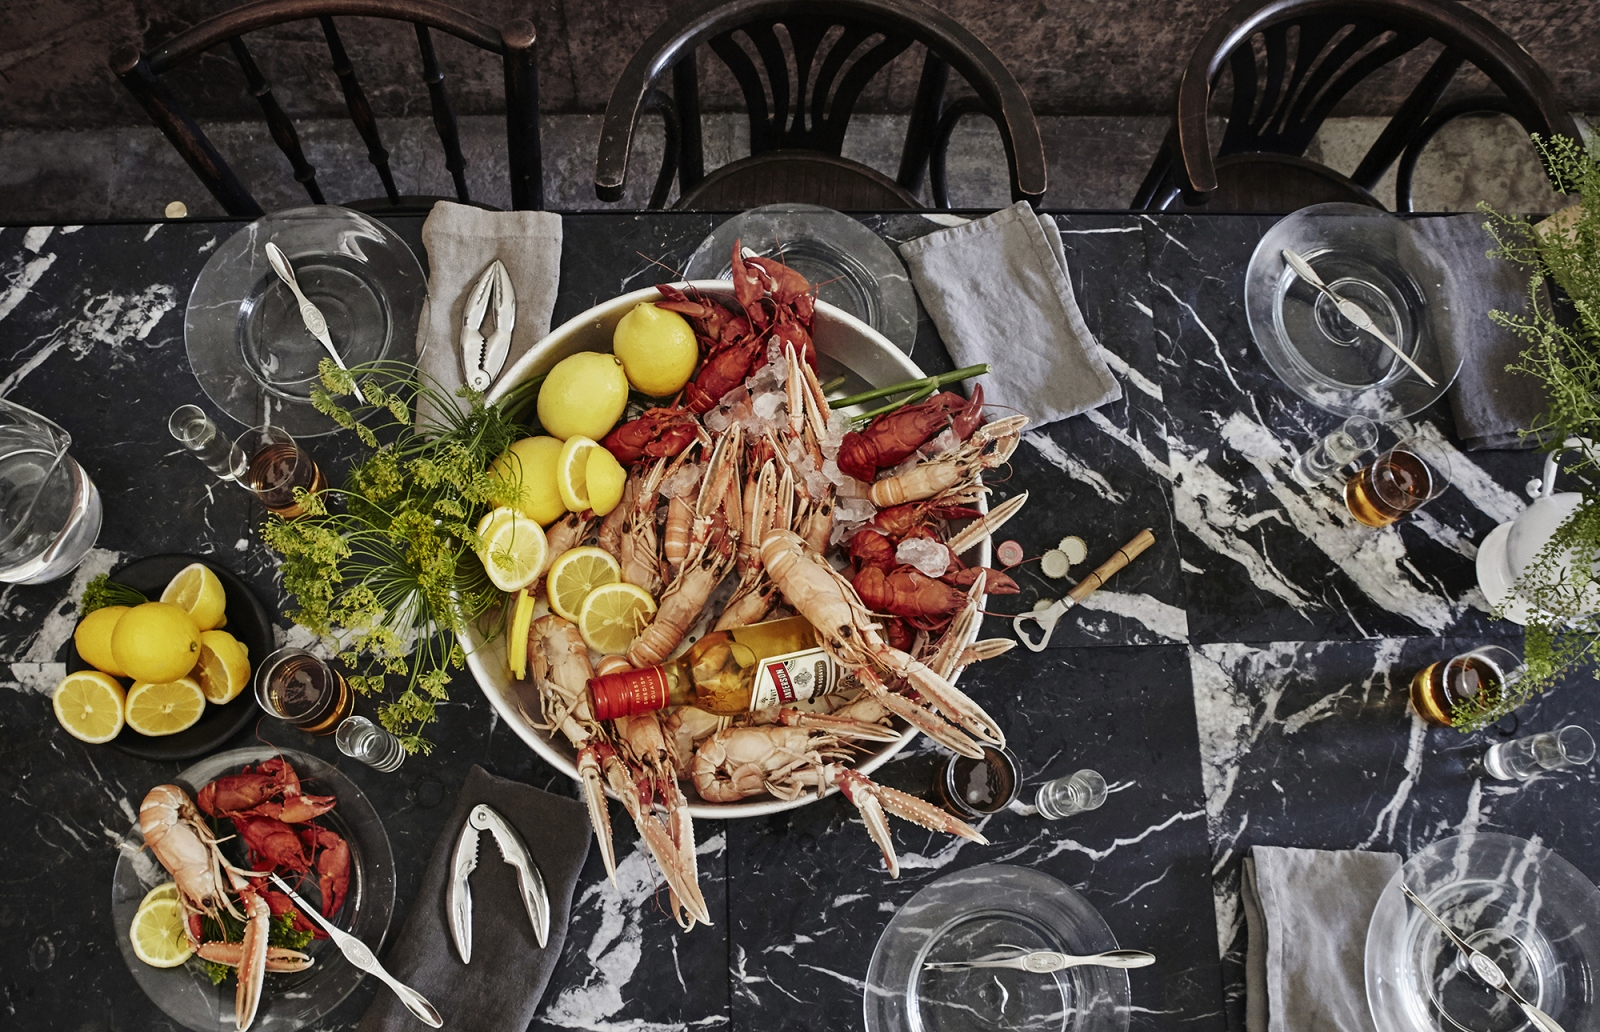 If summer in Sweden starts with Midsummer, it ends with the Crayfish Festivals.  All over Sweden colourfully decorated tables serves crayfish fresh from the salty West coast. Let the feast begin!